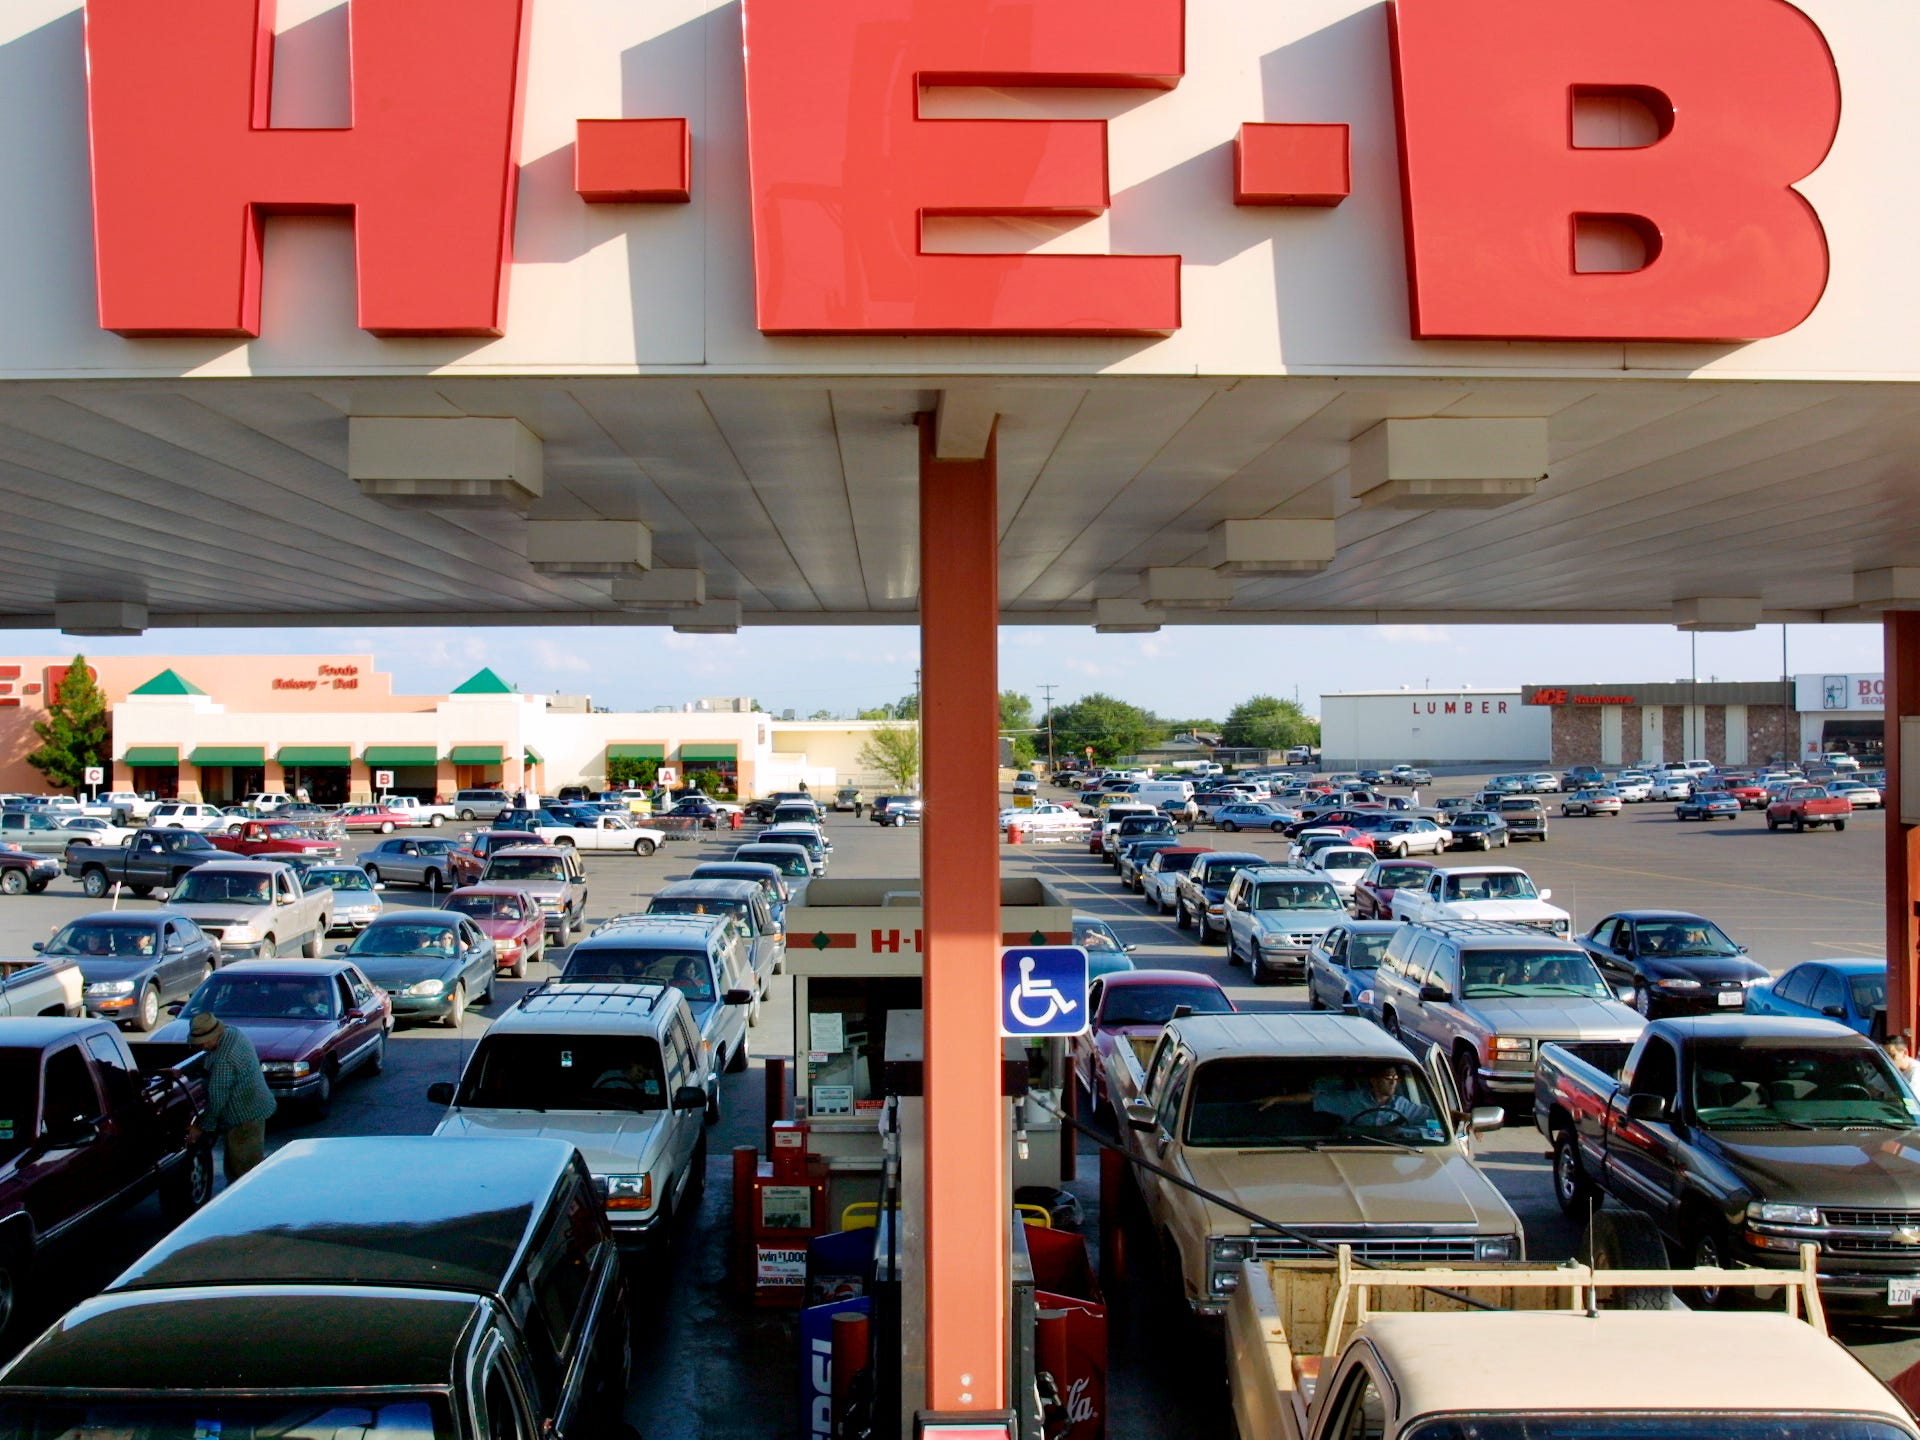 Scores of drivers line up to purchase gasoline at H-E-B on Sept. 11, 2001, in fears that the prices would rise because of the terrorist attacks that day.